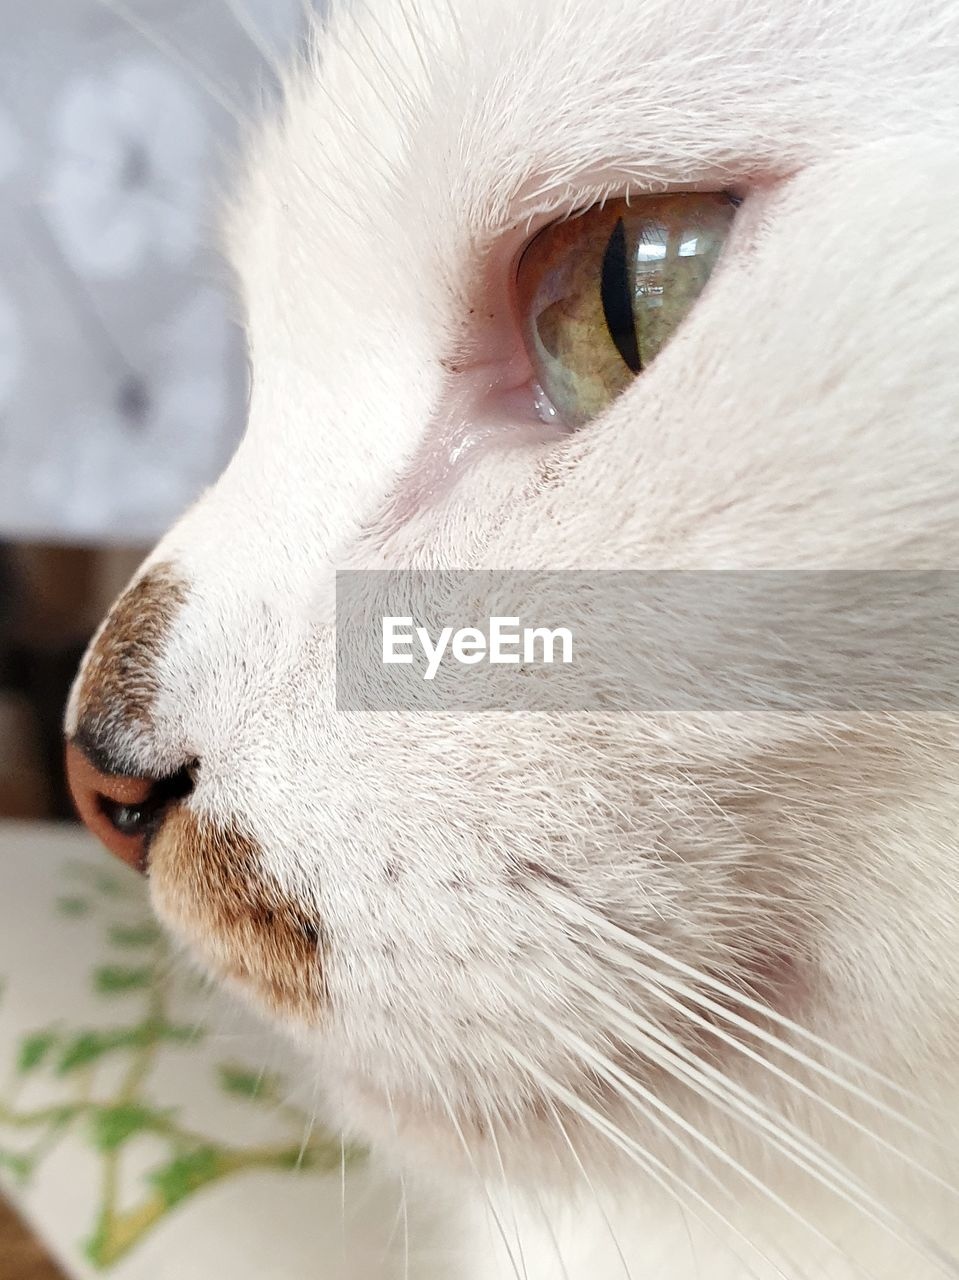 domestic, pets, domestic animals, one animal, domestic cat, cat, mammal, feline, animal, animal themes, vertebrate, close-up, animal body part, white color, animal head, no people, whisker, looking, focus on foreground, looking away, animal eye, animal nose, snout